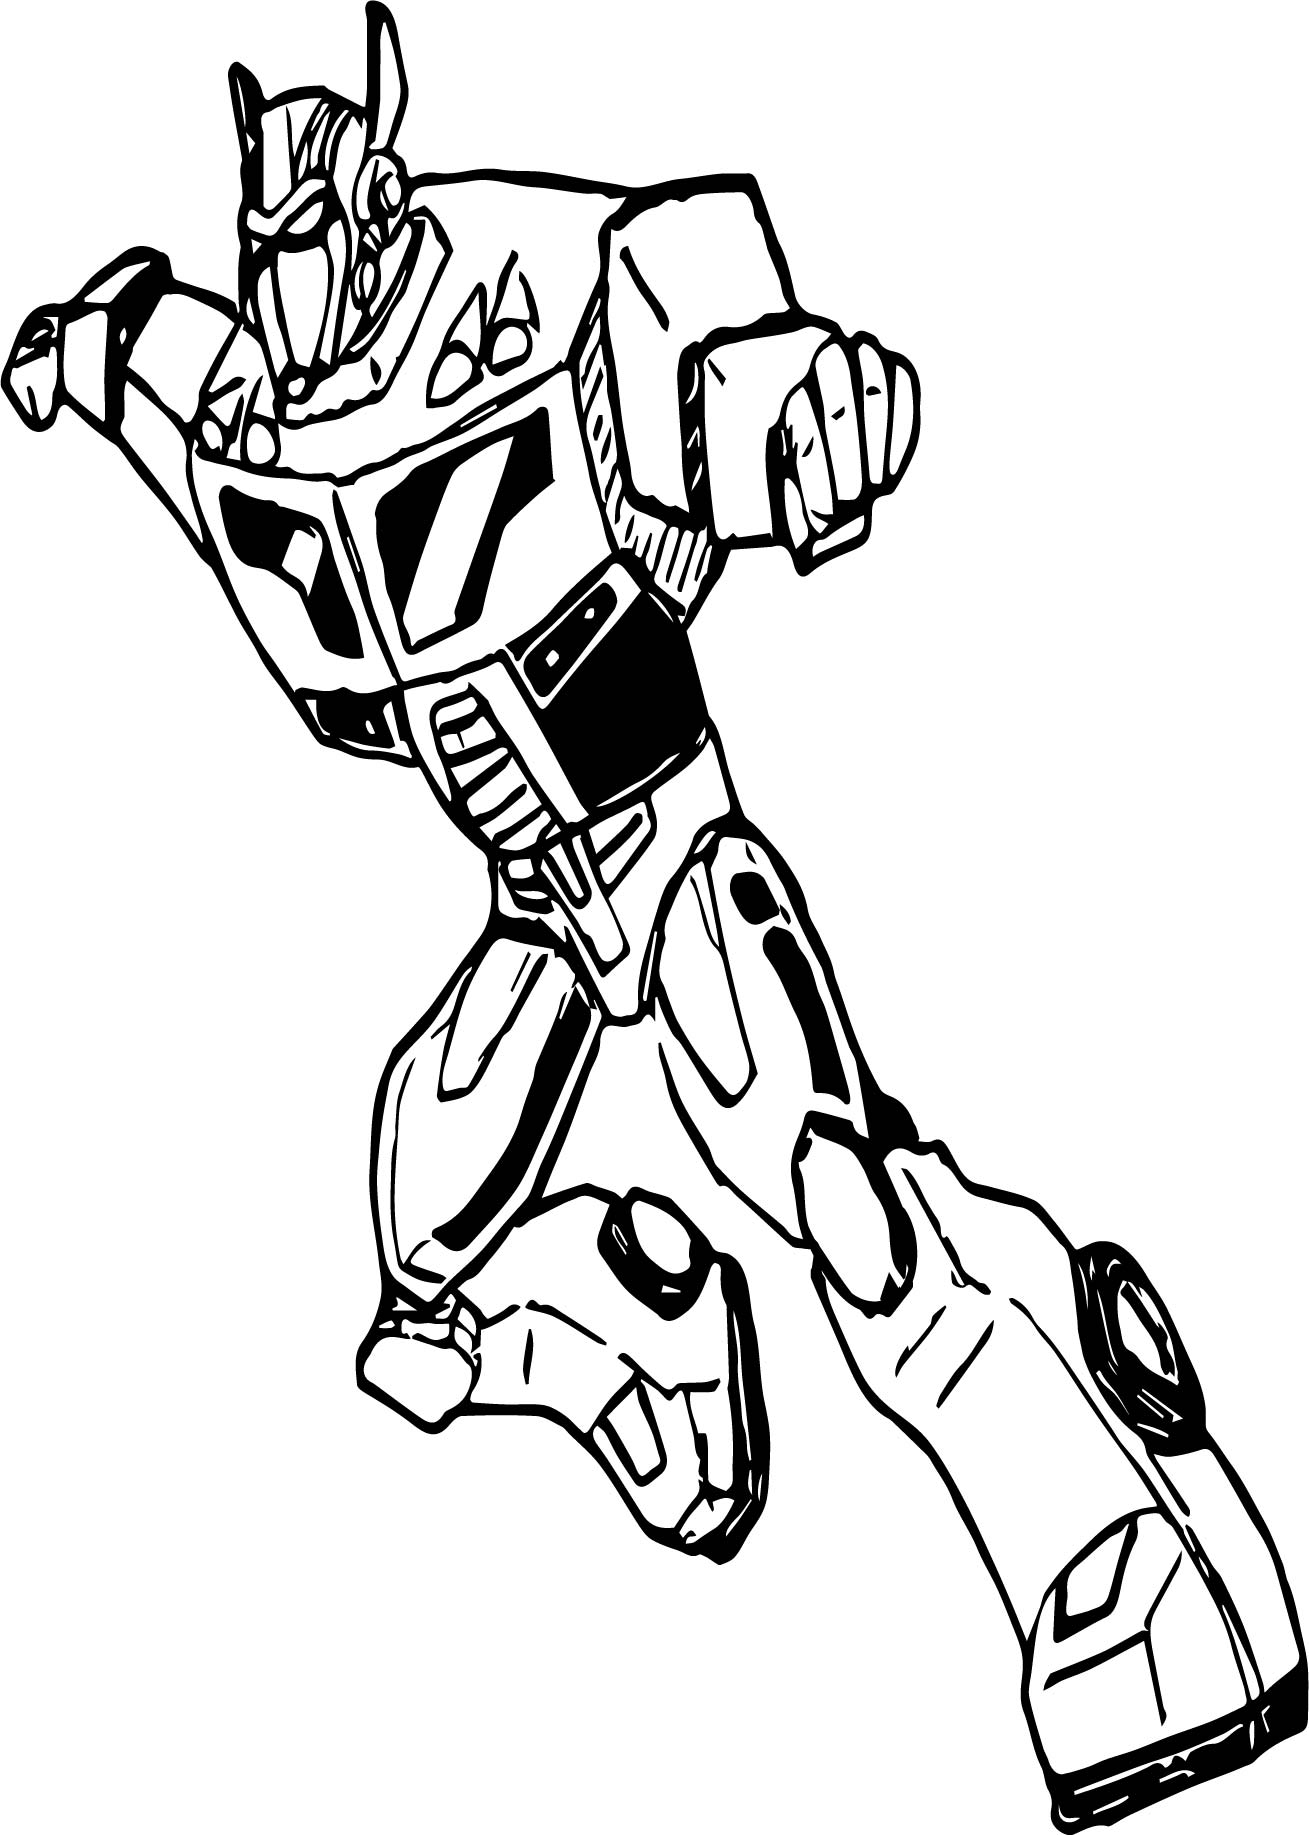 Transformers Go Coloring Page